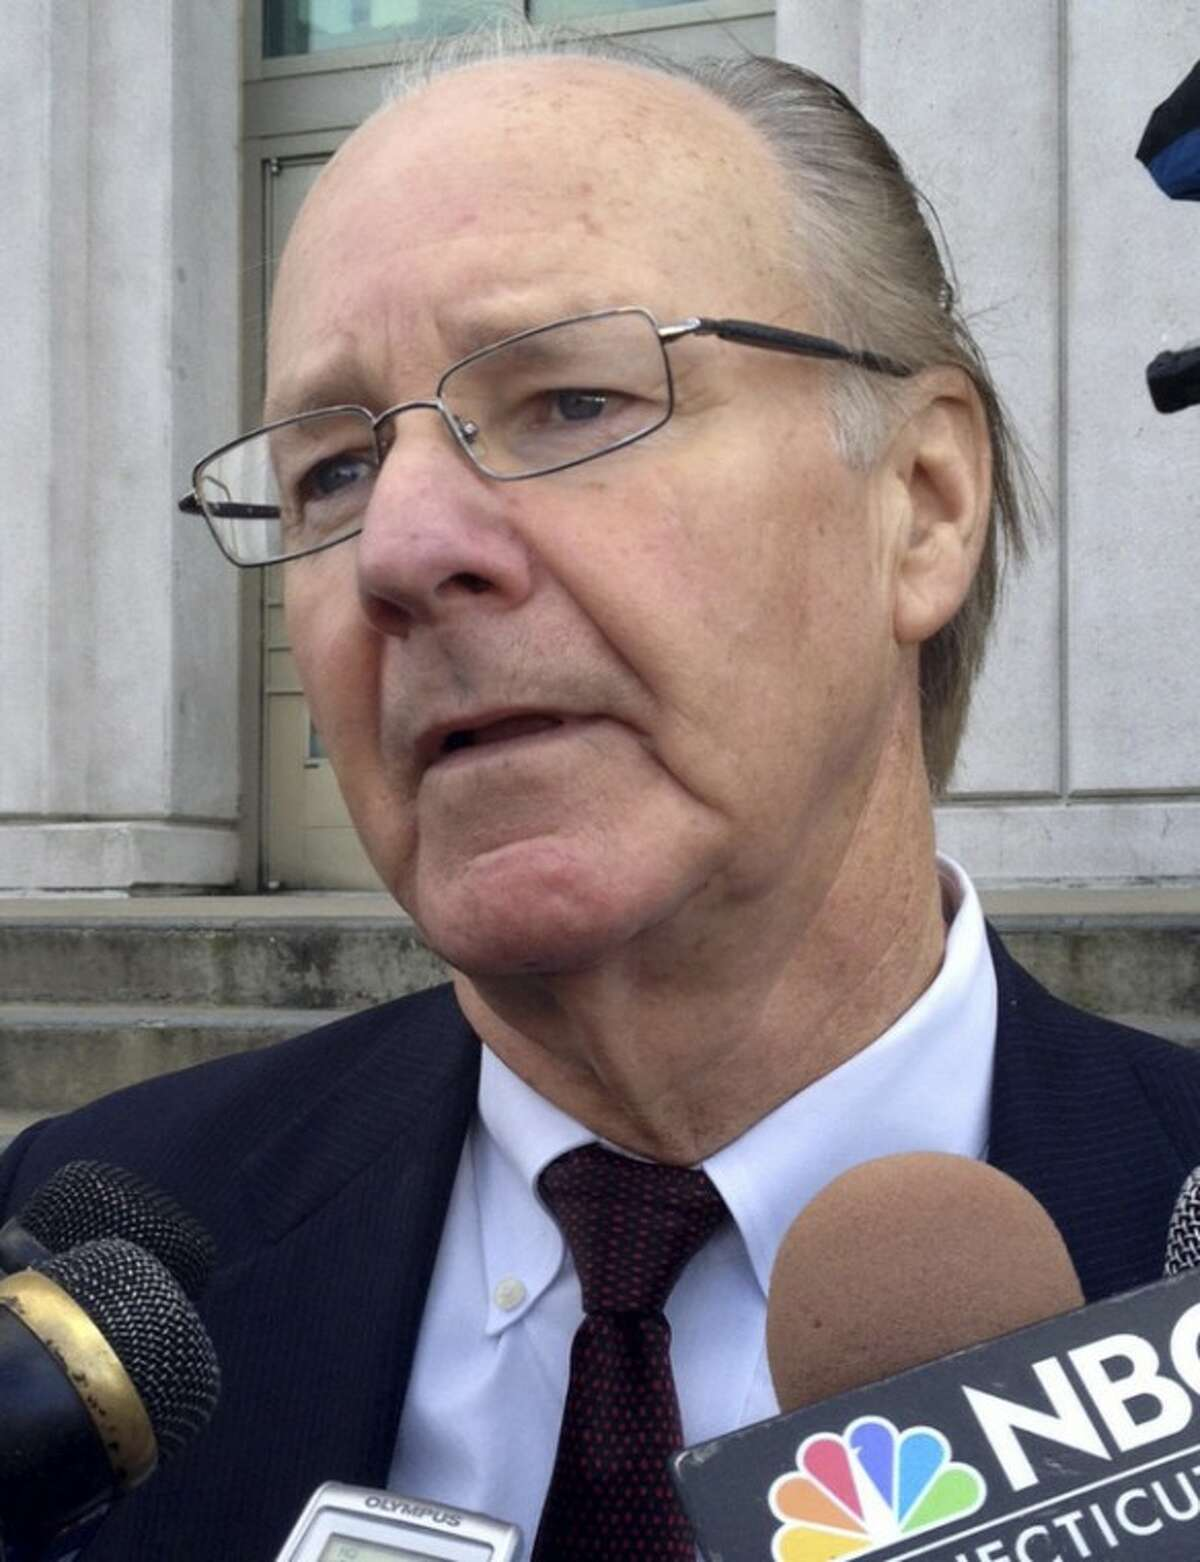 Defense attorney Richard Brown speaks to reporters about the not guilty verdict for his client Stephen Morgan, of Marblehead, Mass., outside Middlesex Superior Court, in Middletown, Conn., Friday, Dec. 16, 2011. Morgan has been found not guilty by reason of insanity in the 2009 shooting death of 21-year-old Wesleyan University student Johanna Justin-Jinich. (AP Photo/The Middletown Press, Lauren Sievert)